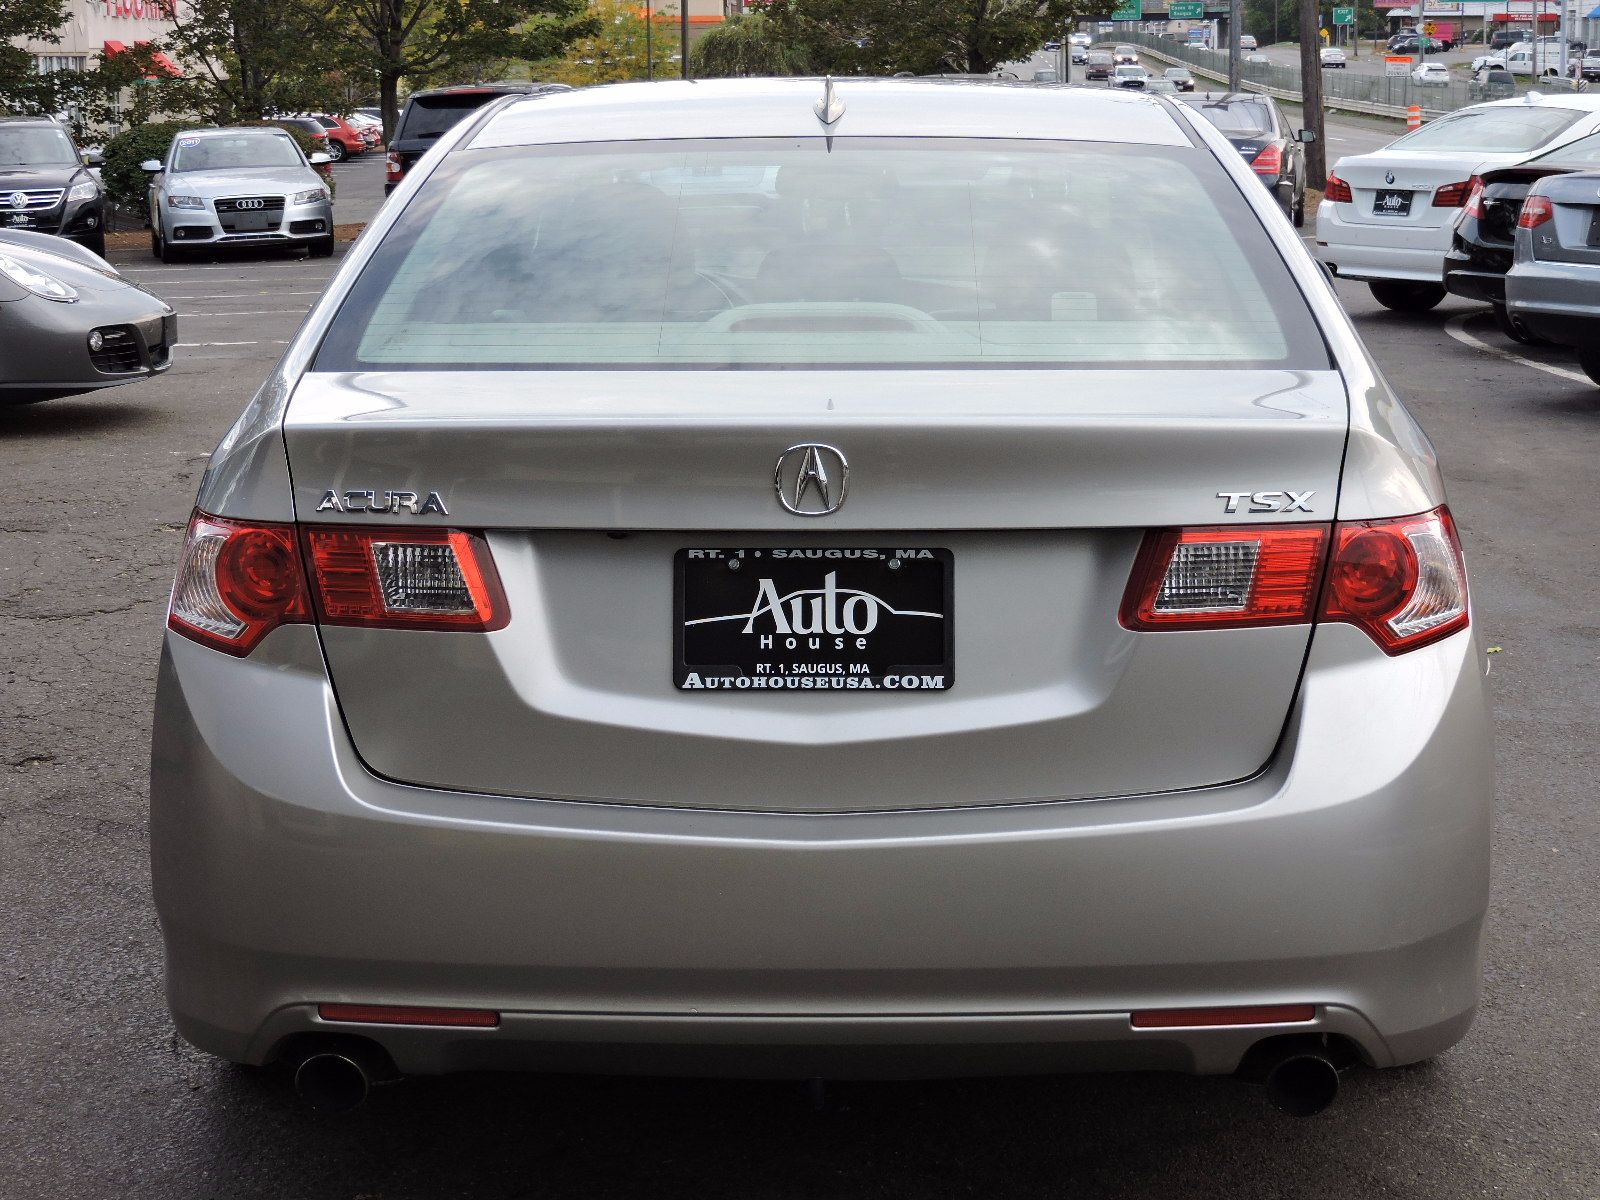 2009 Acura TSX - Tech Package - Navigation - 6 Speed